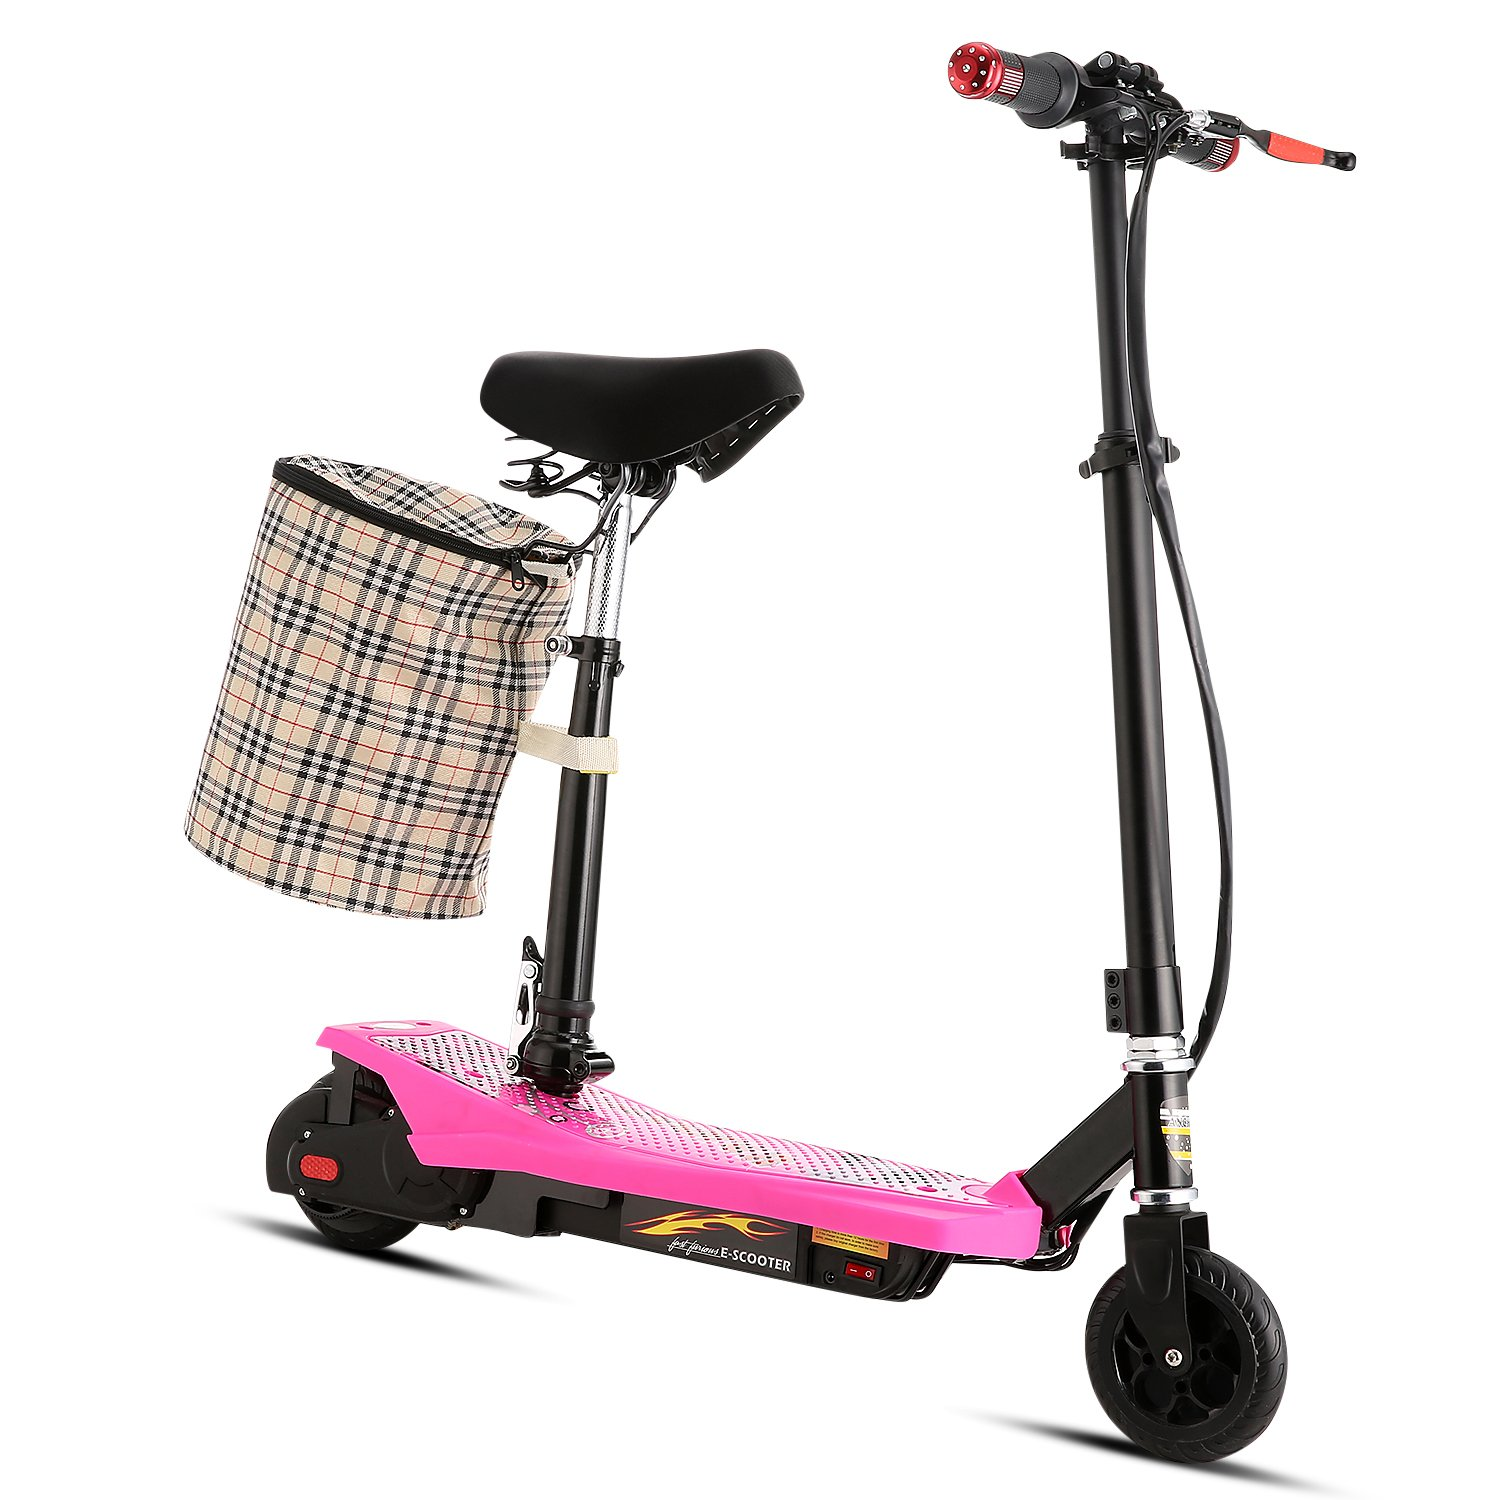 Ancheer S300 Mini Scooter eléctrico con asiento ABS ...